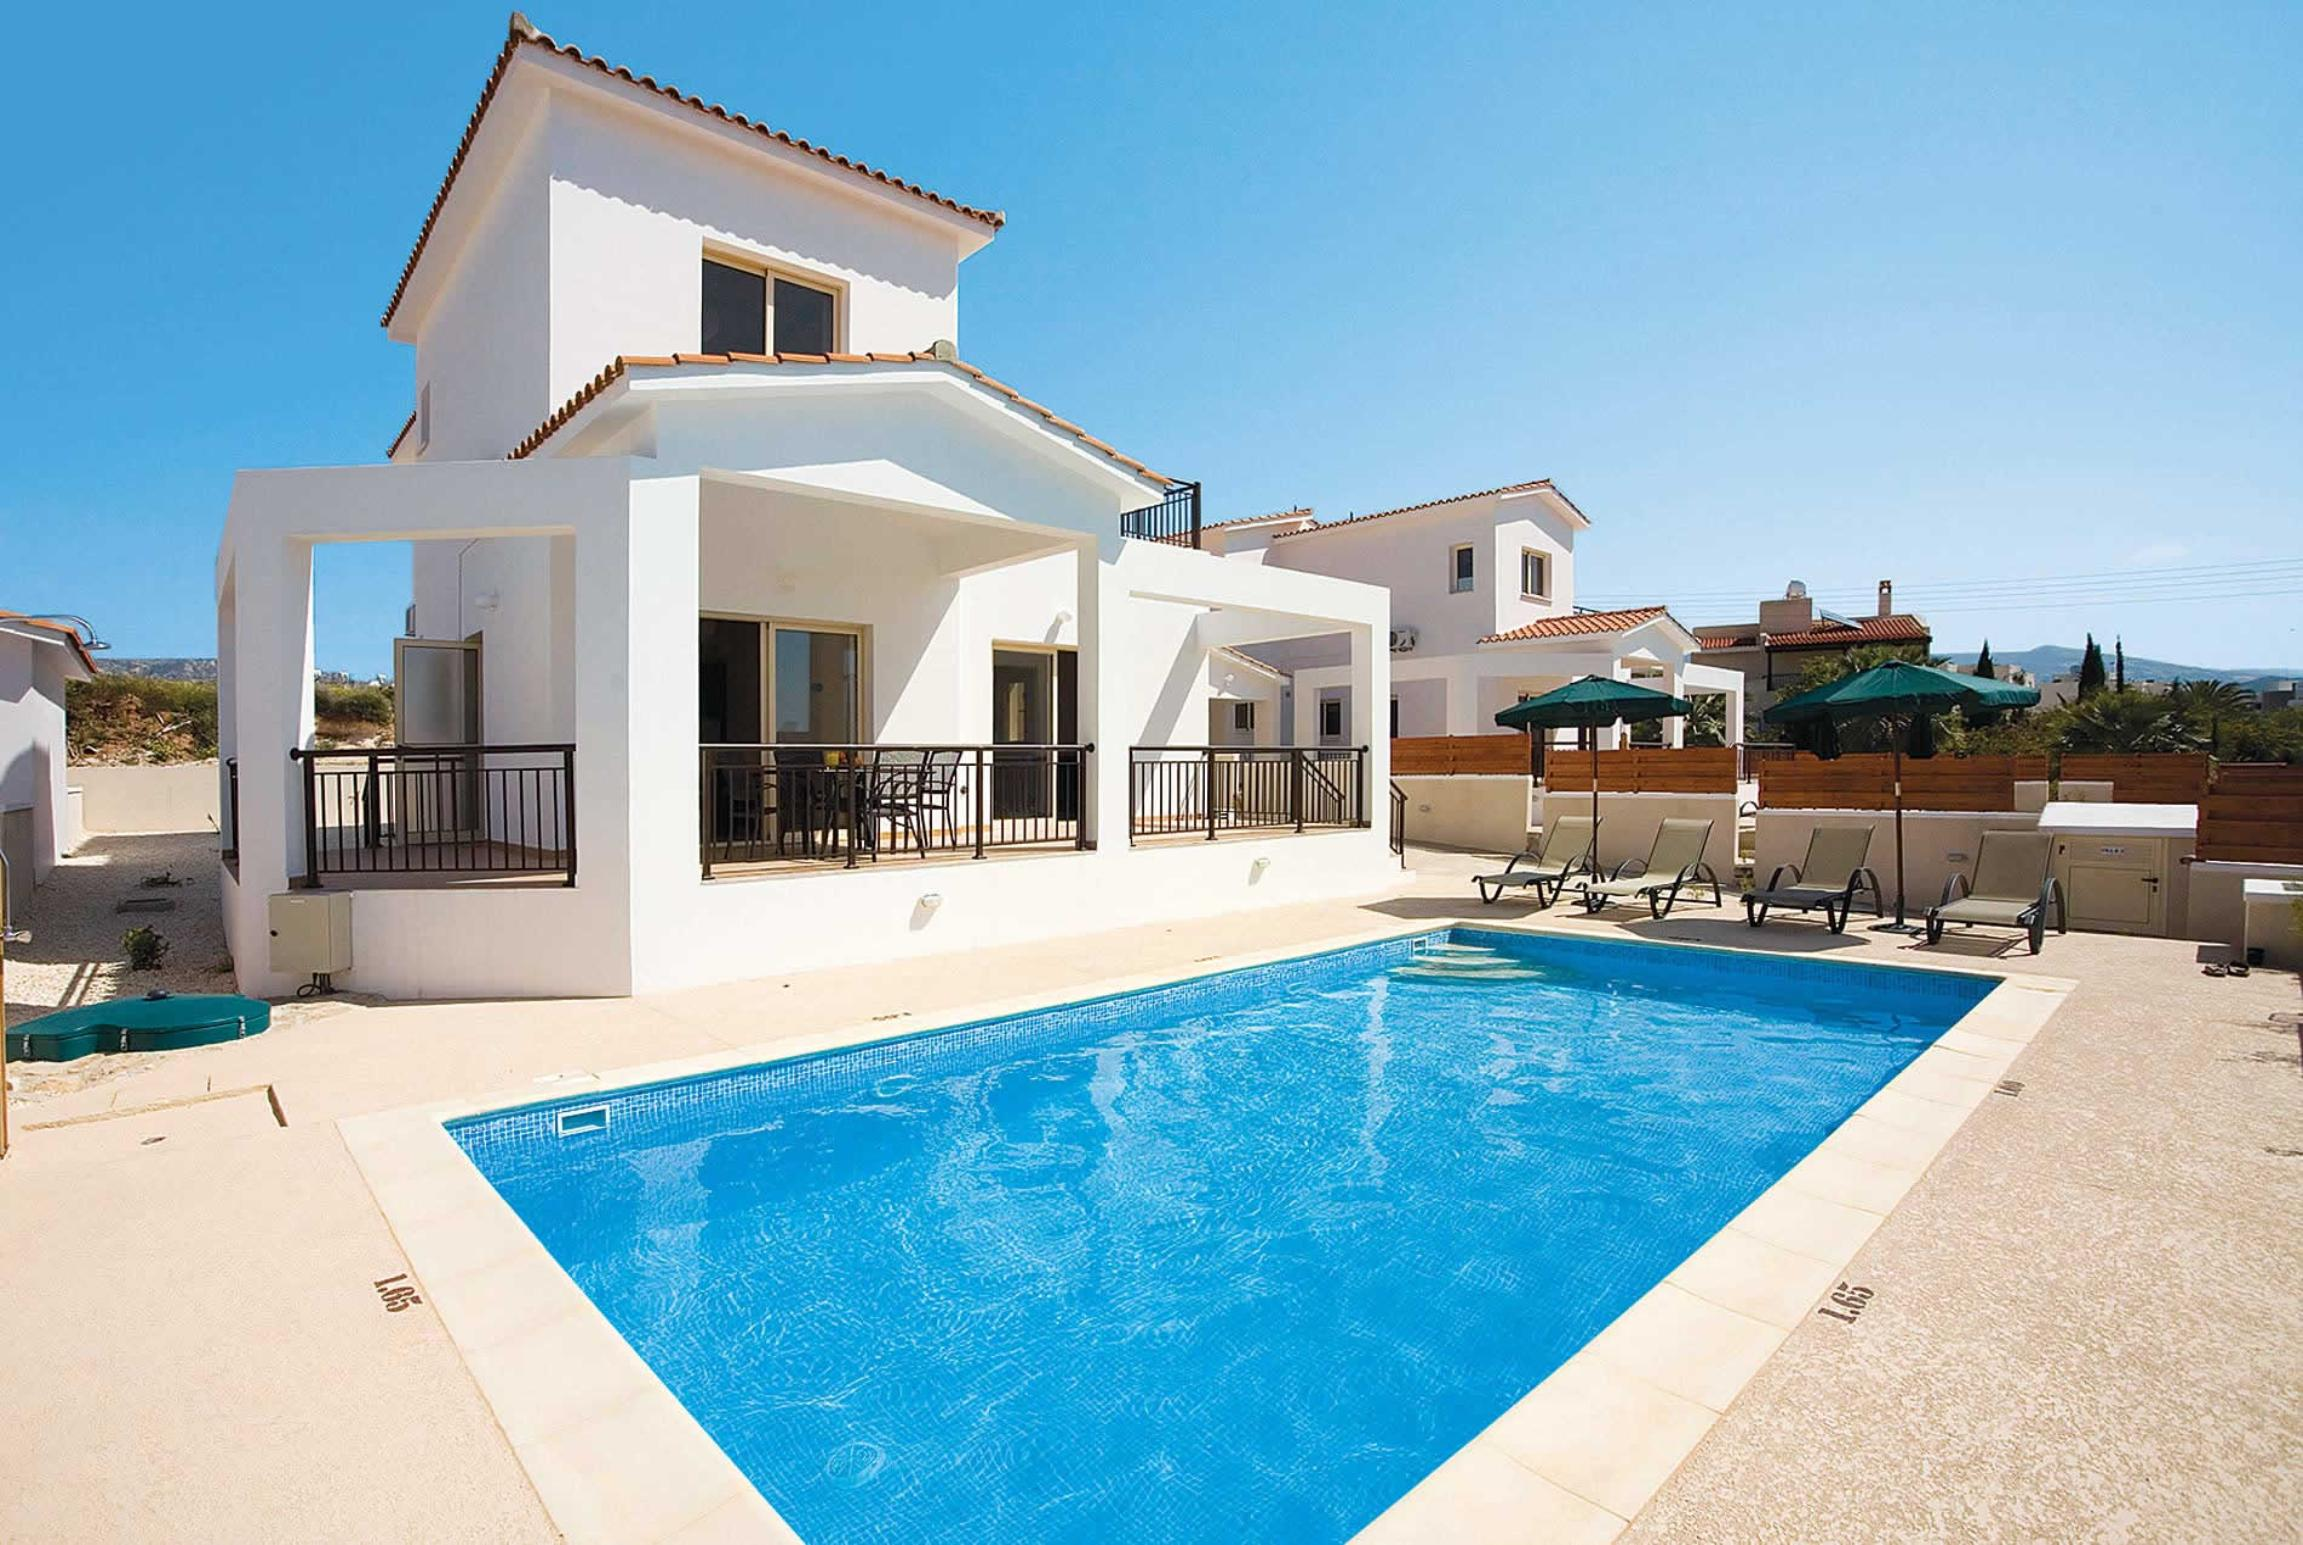 Photo of Coralia Dream 2 villa